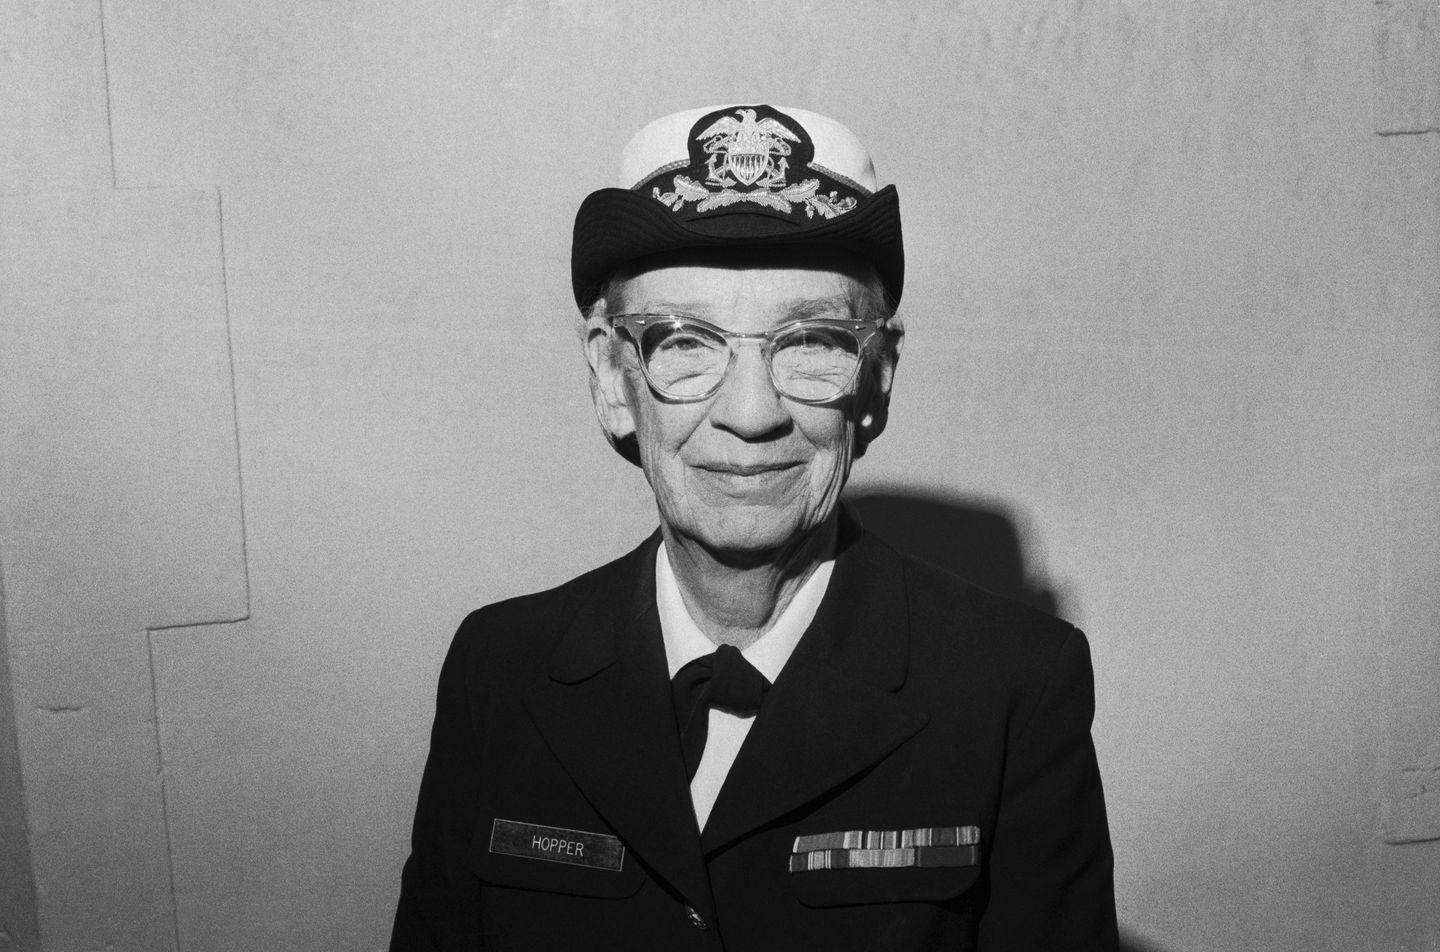 """<p>Mathematician and U.S. Navy Rear Admiral Grace Hopper changed the face of computing as we know it. </p><p>In 1943, Hopper joined the U.S. Naval Reserve, where she was assigned to Harvard University's Bureau of Ordnance Computation Project. There, she began work on the Mark series of computers and coined the term computer """"bug"""" after a moth infiltrated hardware on the Mark I machine. She also worked on the UNIVAC I, the first commercial all-electronic digital computer. </p><p>Hopper went on to work for the Eckert-Mauchly Computer Corp., which was taken over by Remington Rand in 1951 and Sperry Rand Corp. just five years later. Hopper is known for her work with compilers, software that translates programming languages into computing code. </p><p>For example, in 1957, she and her team developed the compiler Flow-Matic, an English-language data-processing compiler. Her translation of complicated systems into easy-to-understand languages made the newly invented technology more accessible.</p>"""